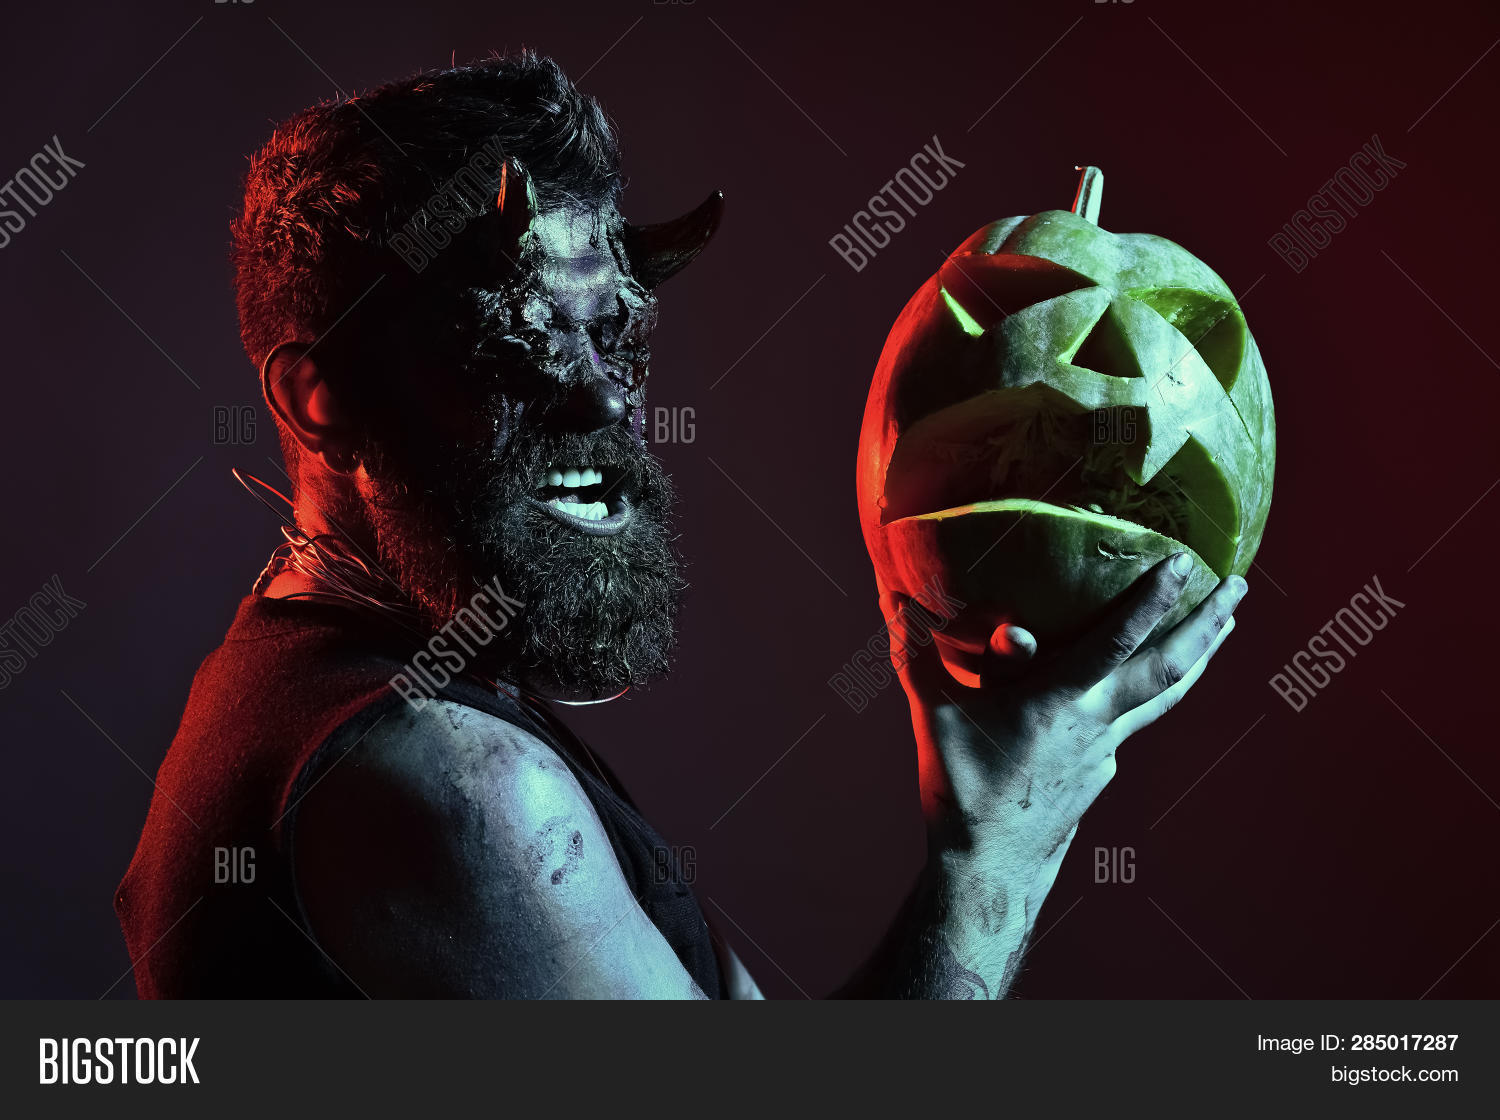 Halloween Maan.Halloween Man Demon Image Photo Free Trial Bigstock